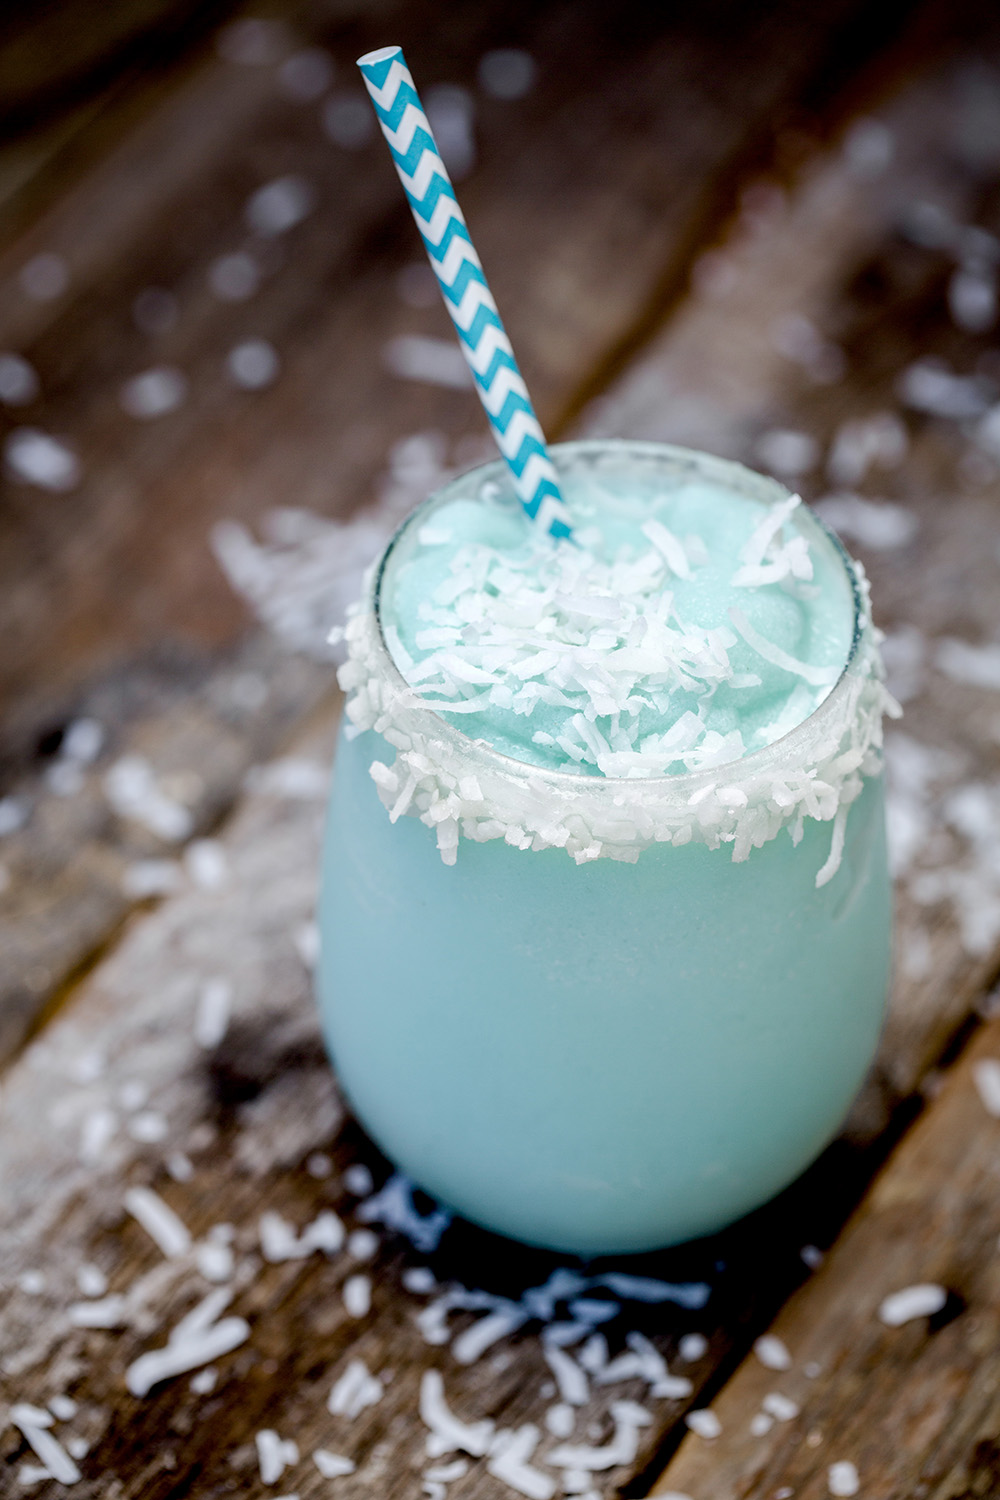 For the decadent drink lovers. We added a little ice cream to this Blue Hawaiian.